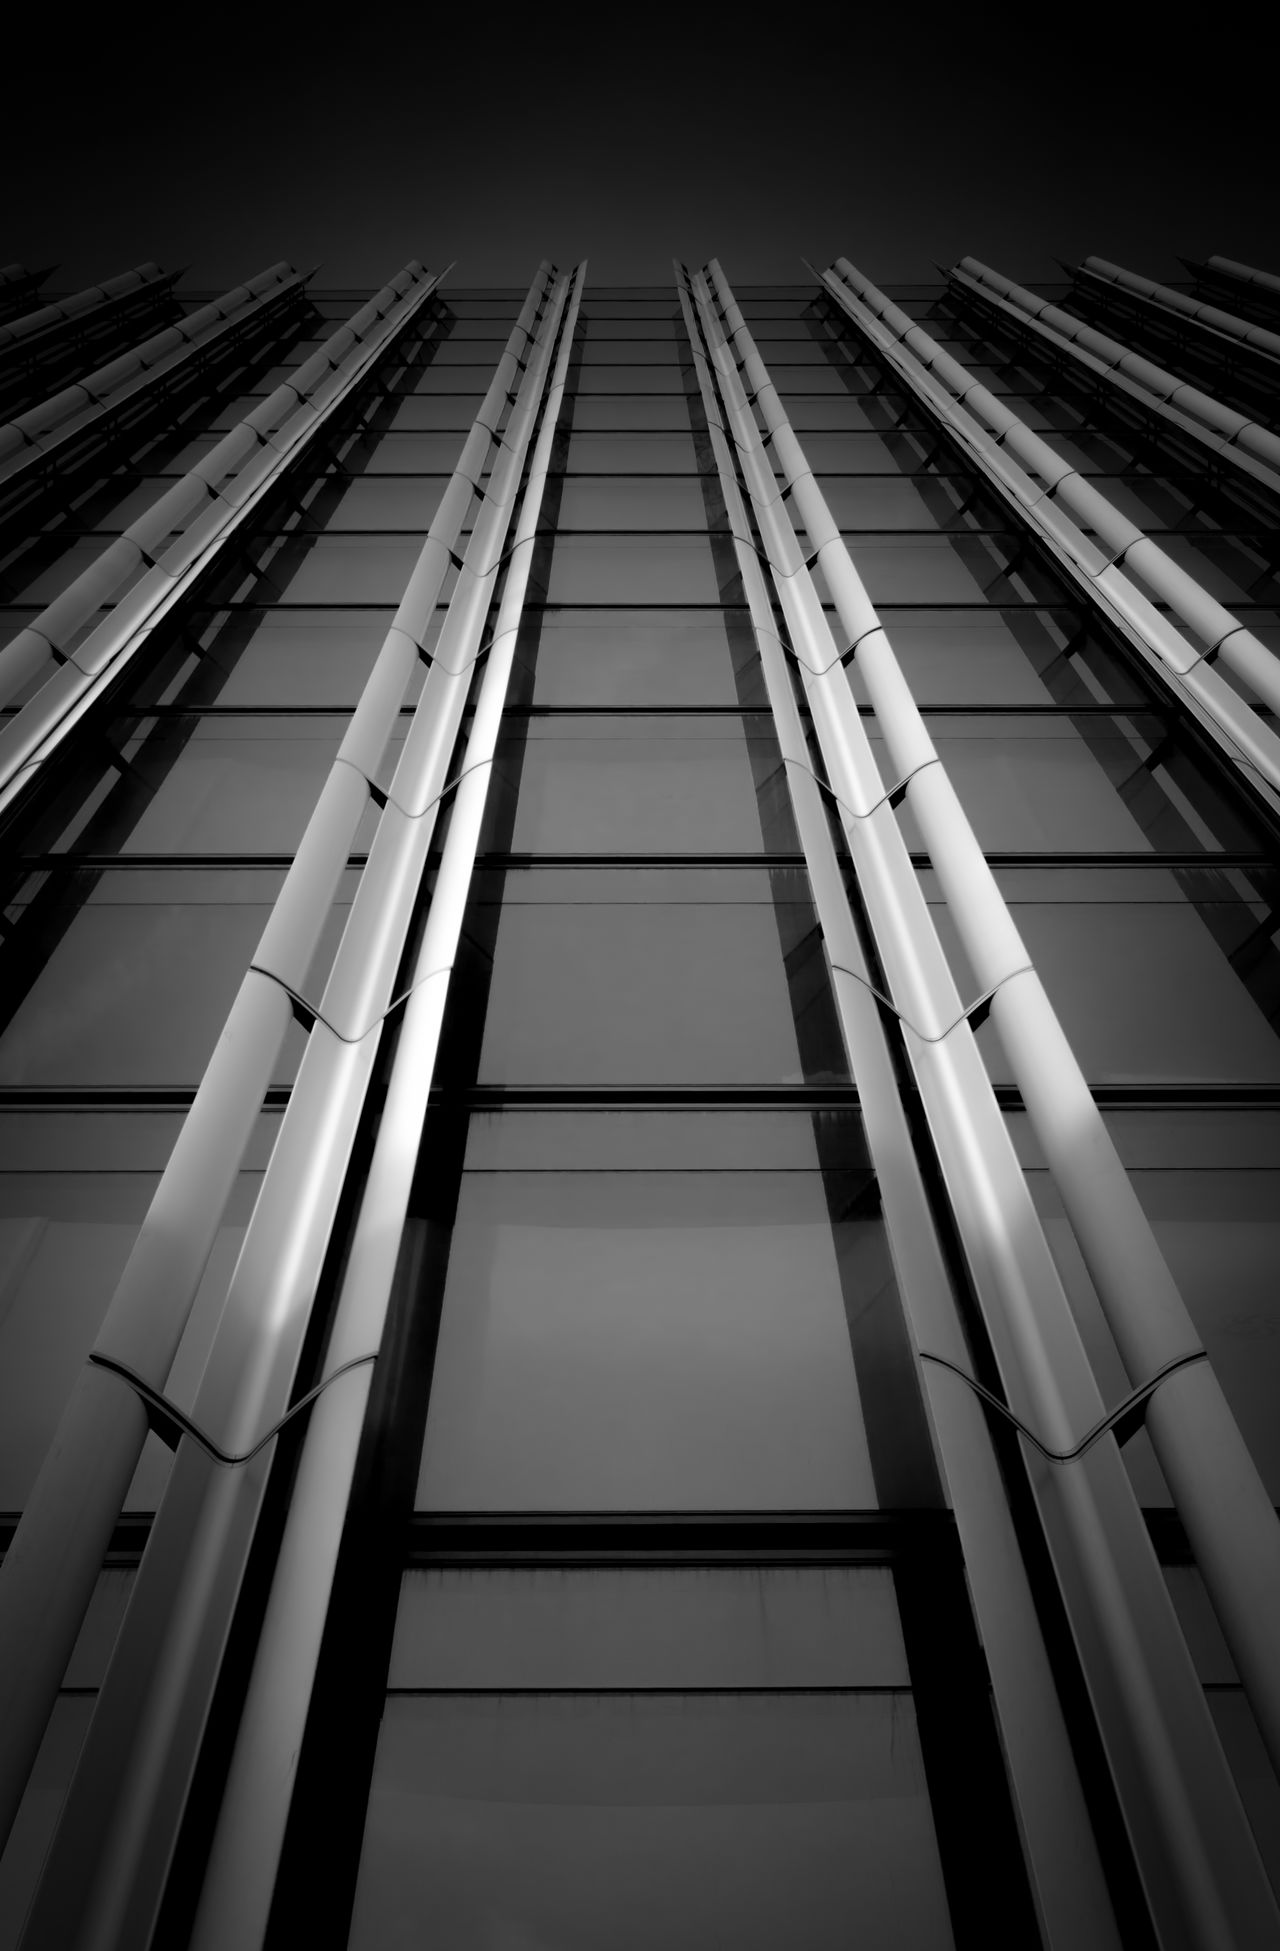 Architecture City Built Structure Low Angle View Symmetry No PeopleSymmetrical Fine Art Photography Window Windows Contrast Black & White Bnw Parallel Lines Light And Shadow Monochromatic Shadows & Lights City London Lights And Shadows Blackandwhite Photography Office Building Glass Looking Up Lookingup